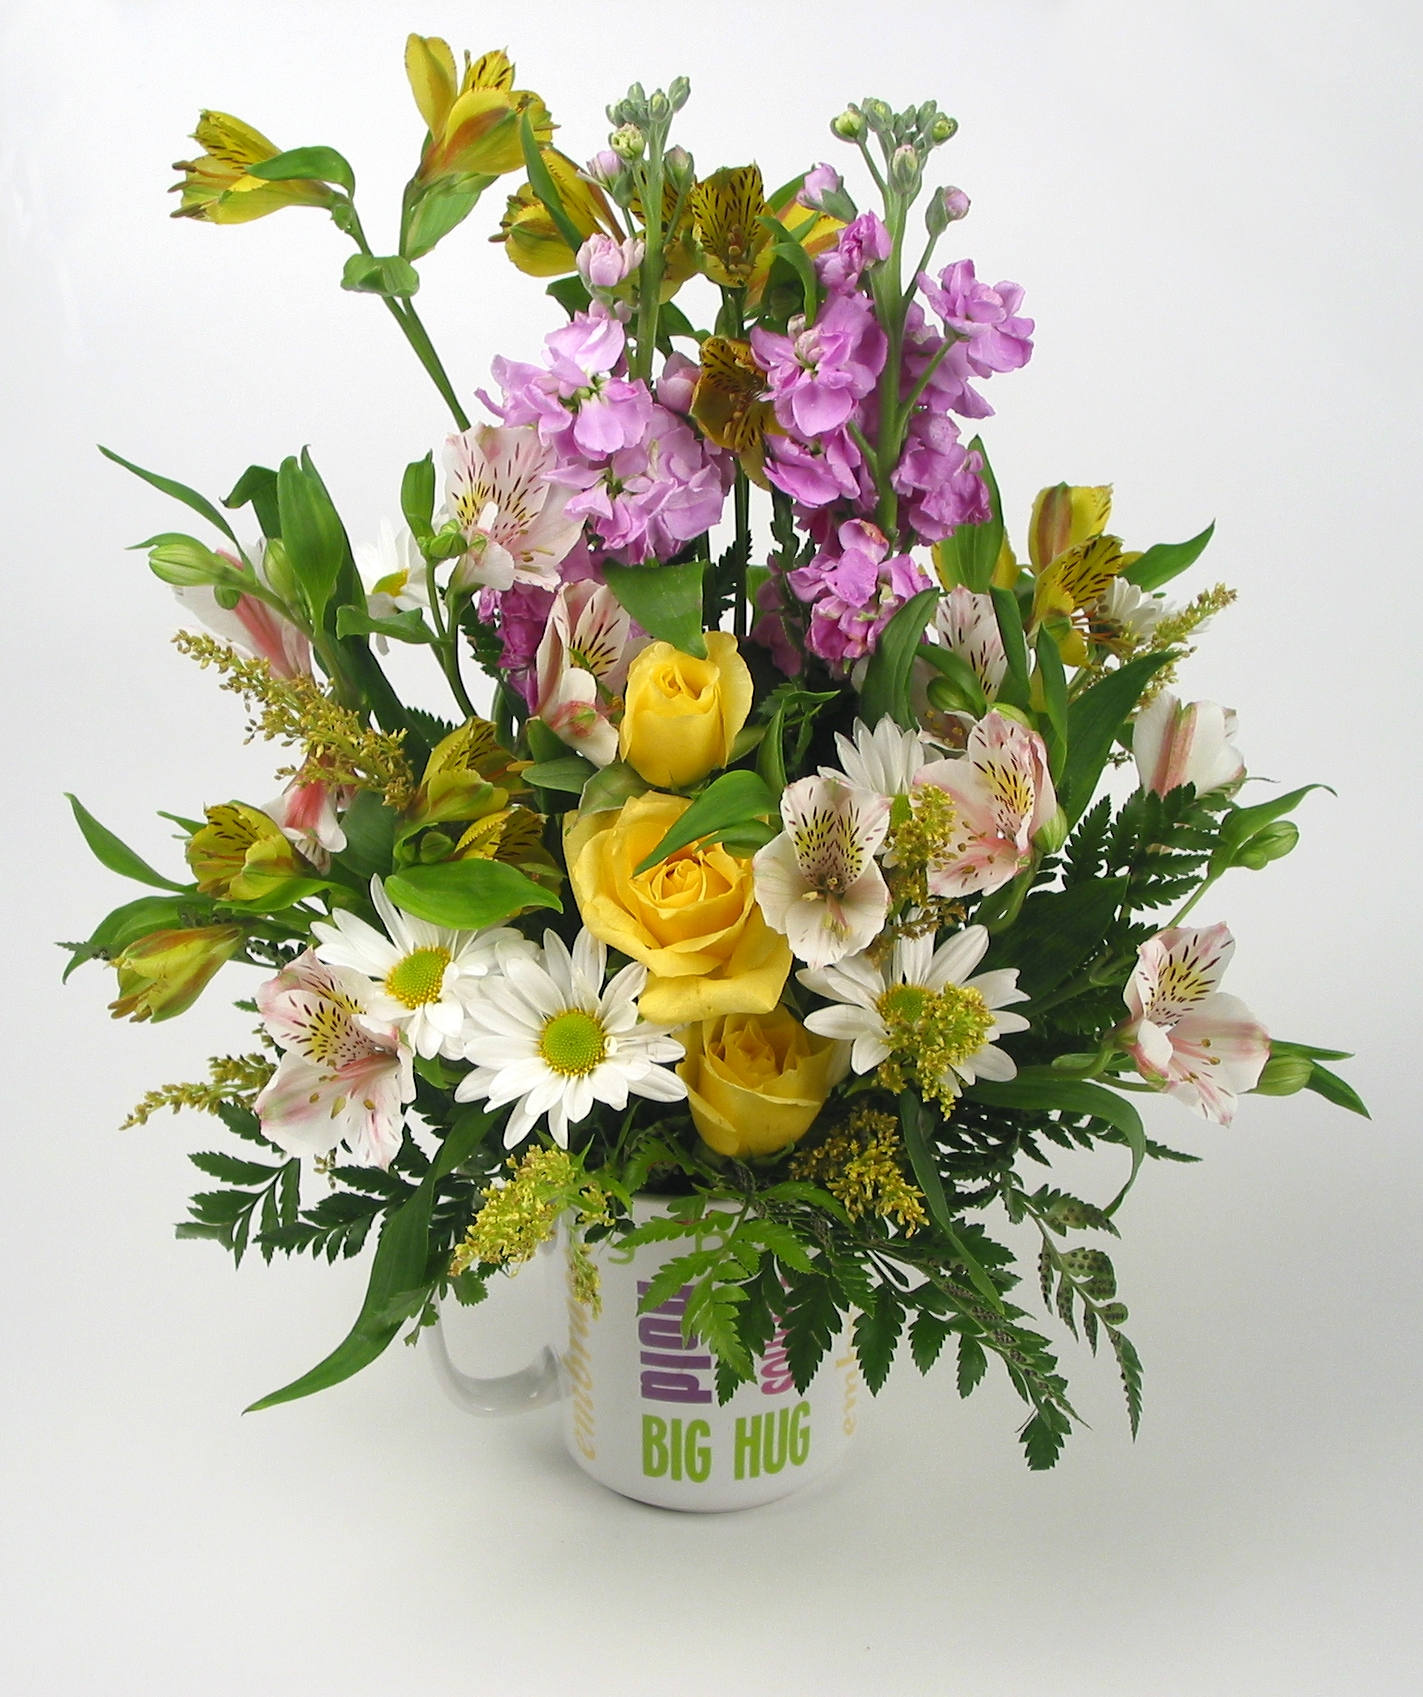 Uses for flowers with broken stems